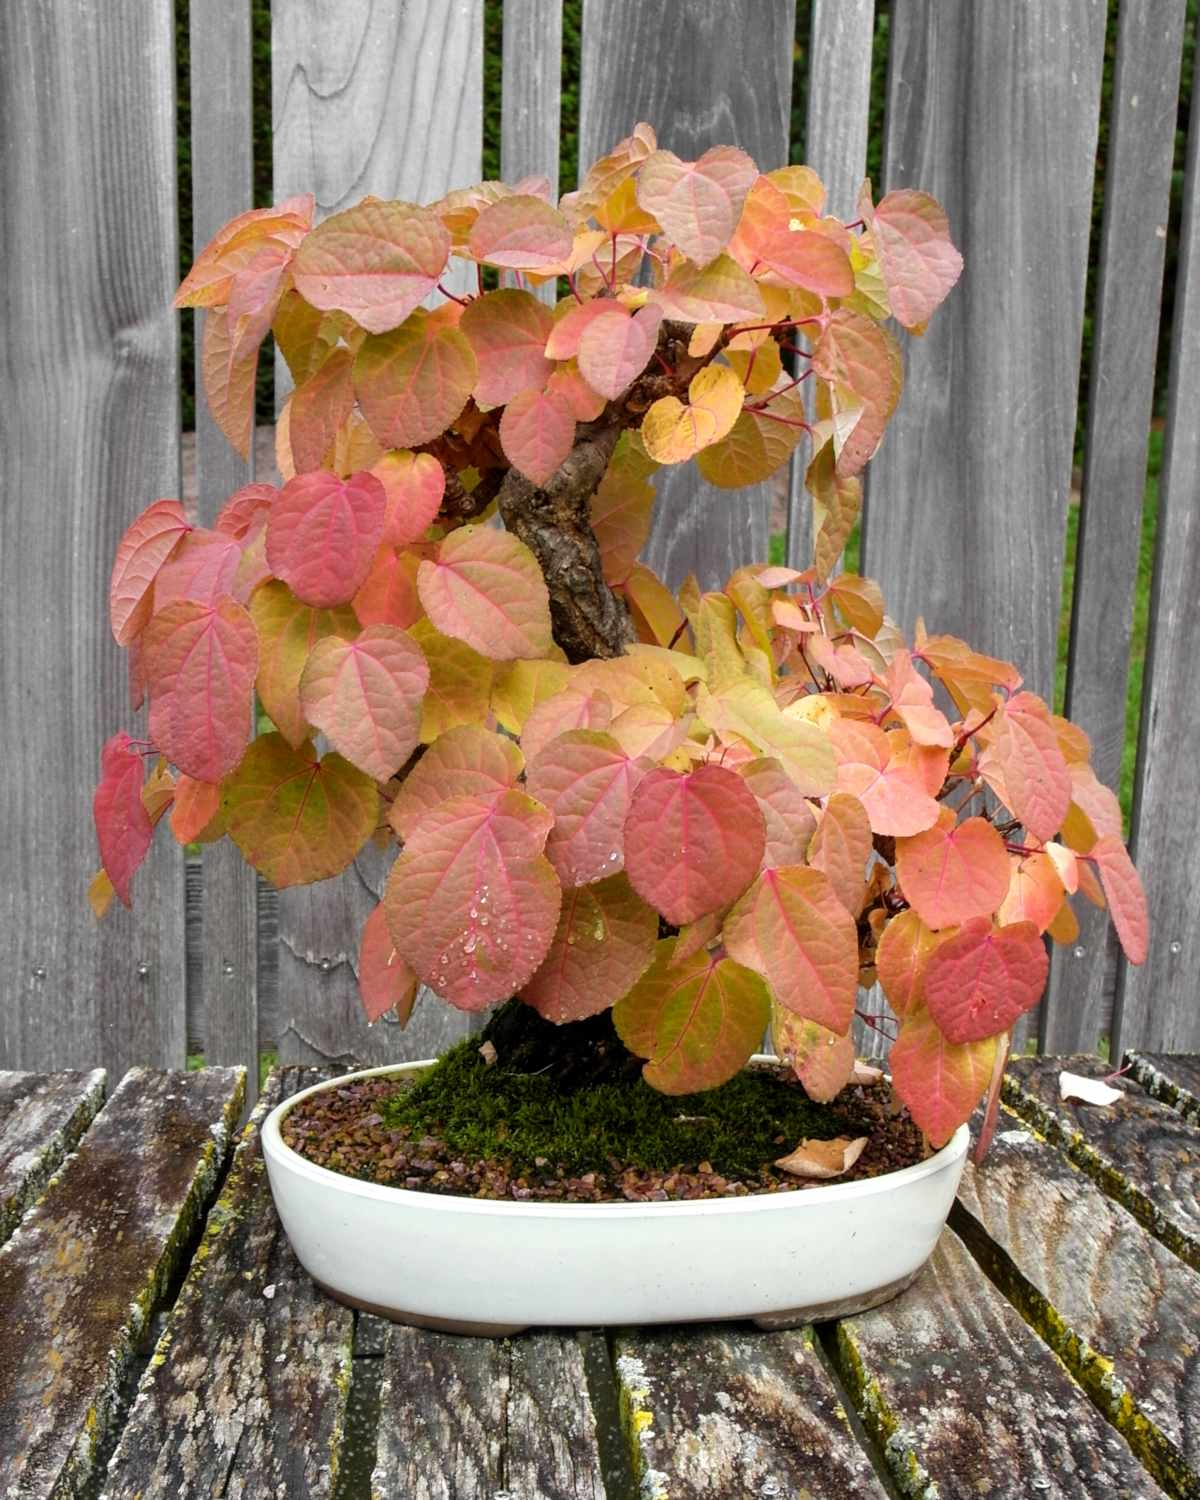 Autumn foliage on a katsura cercidiphyllum bonsai